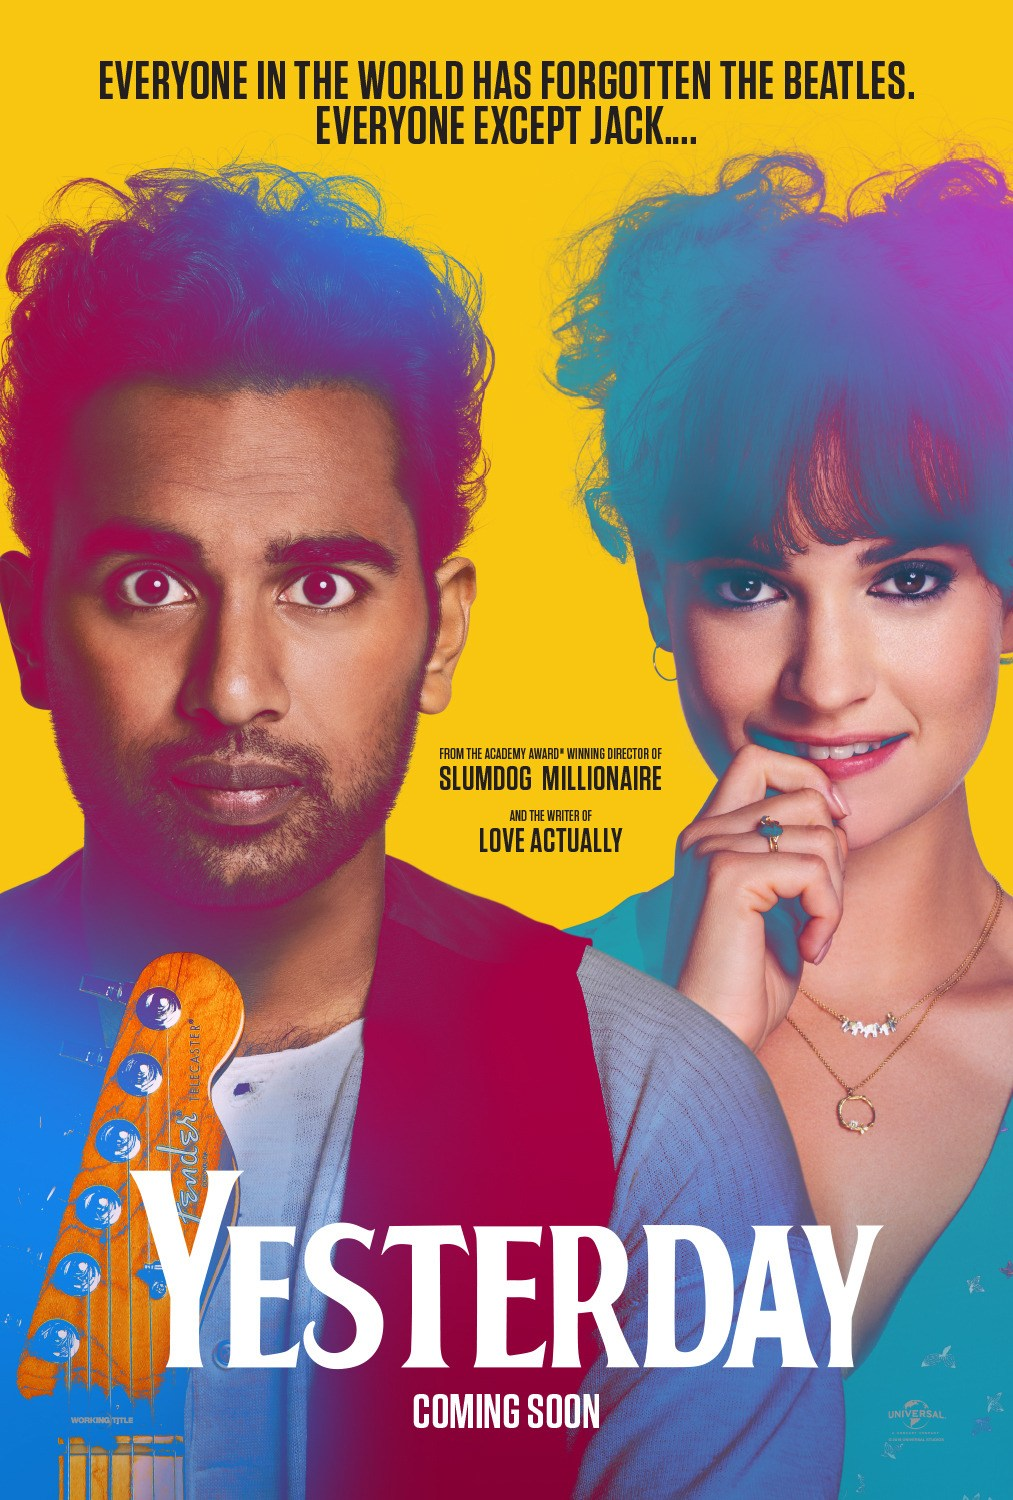 Yesterday-new-film-poster